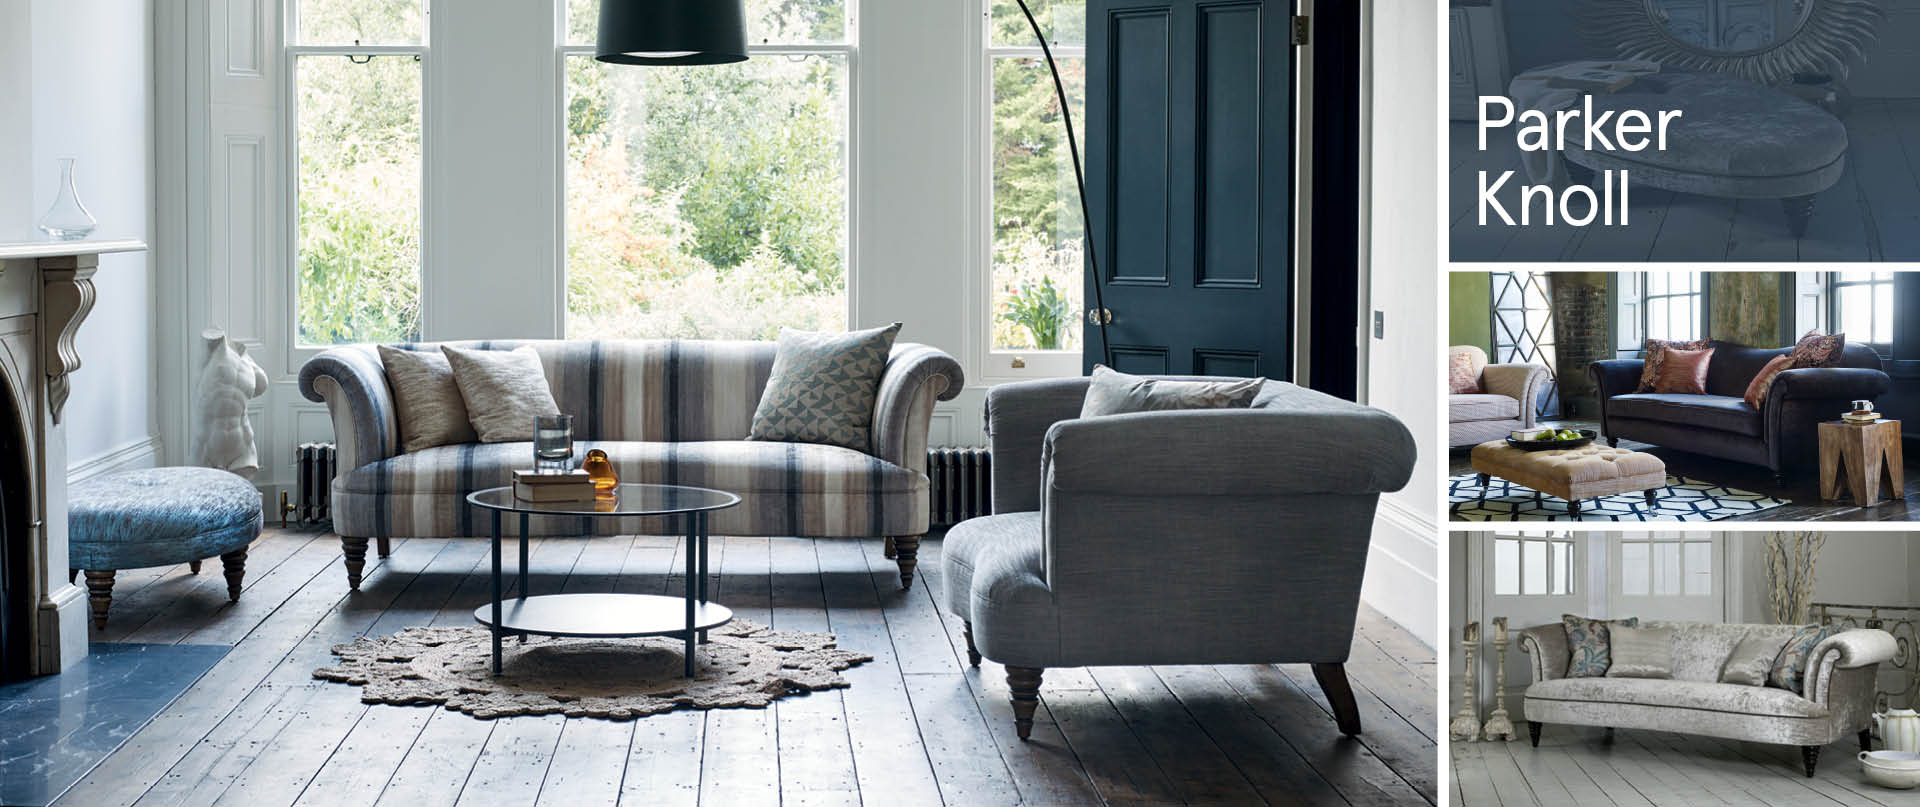 Parker Knoll Brand Page